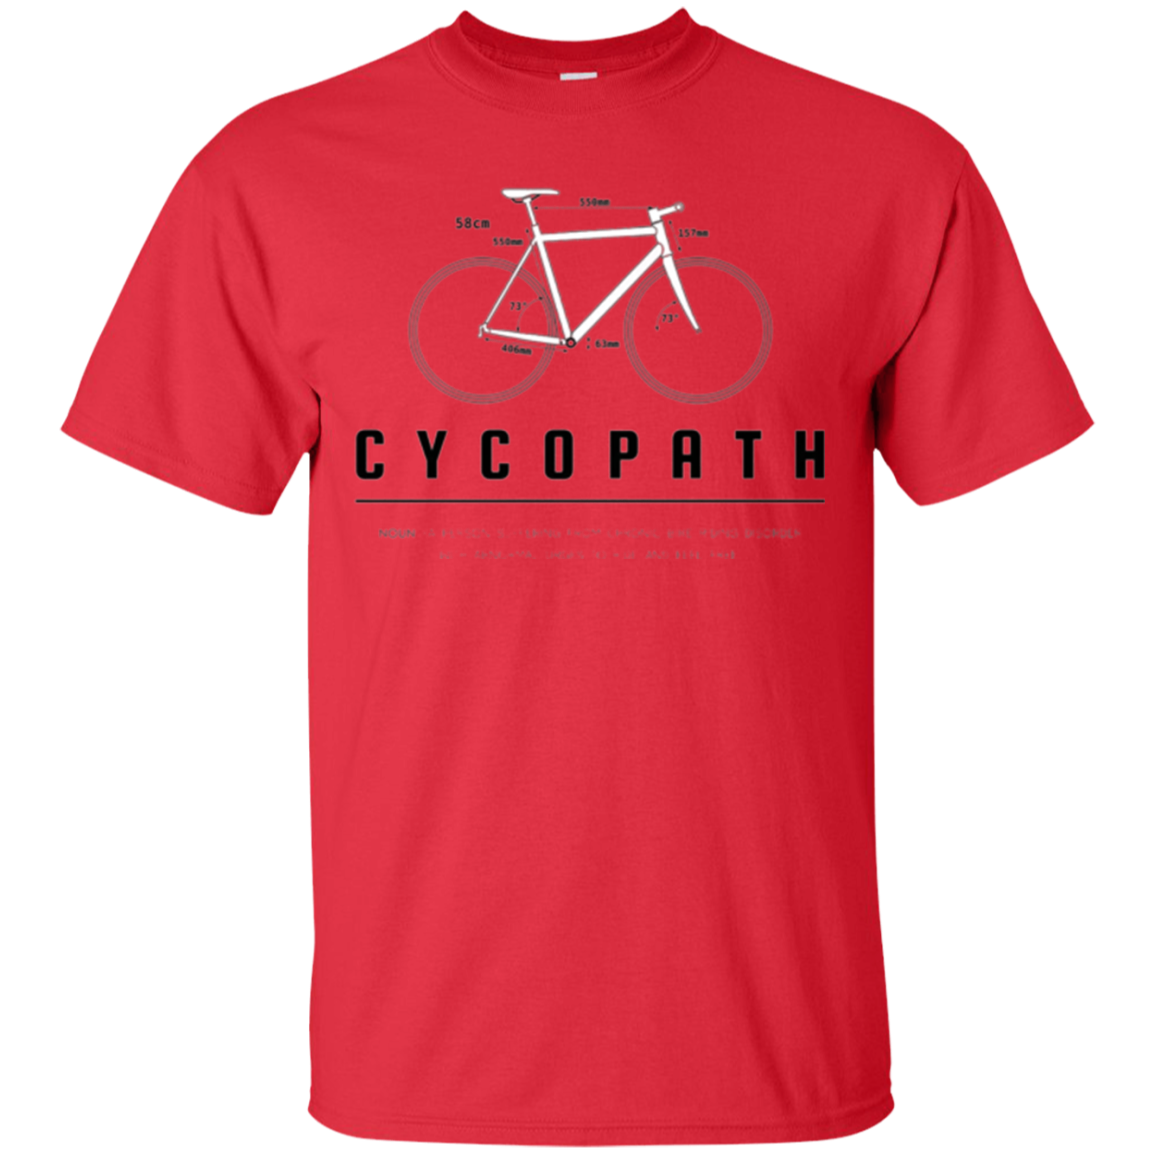 Cycopath T-shirt, Funny Definition and Bike Icon